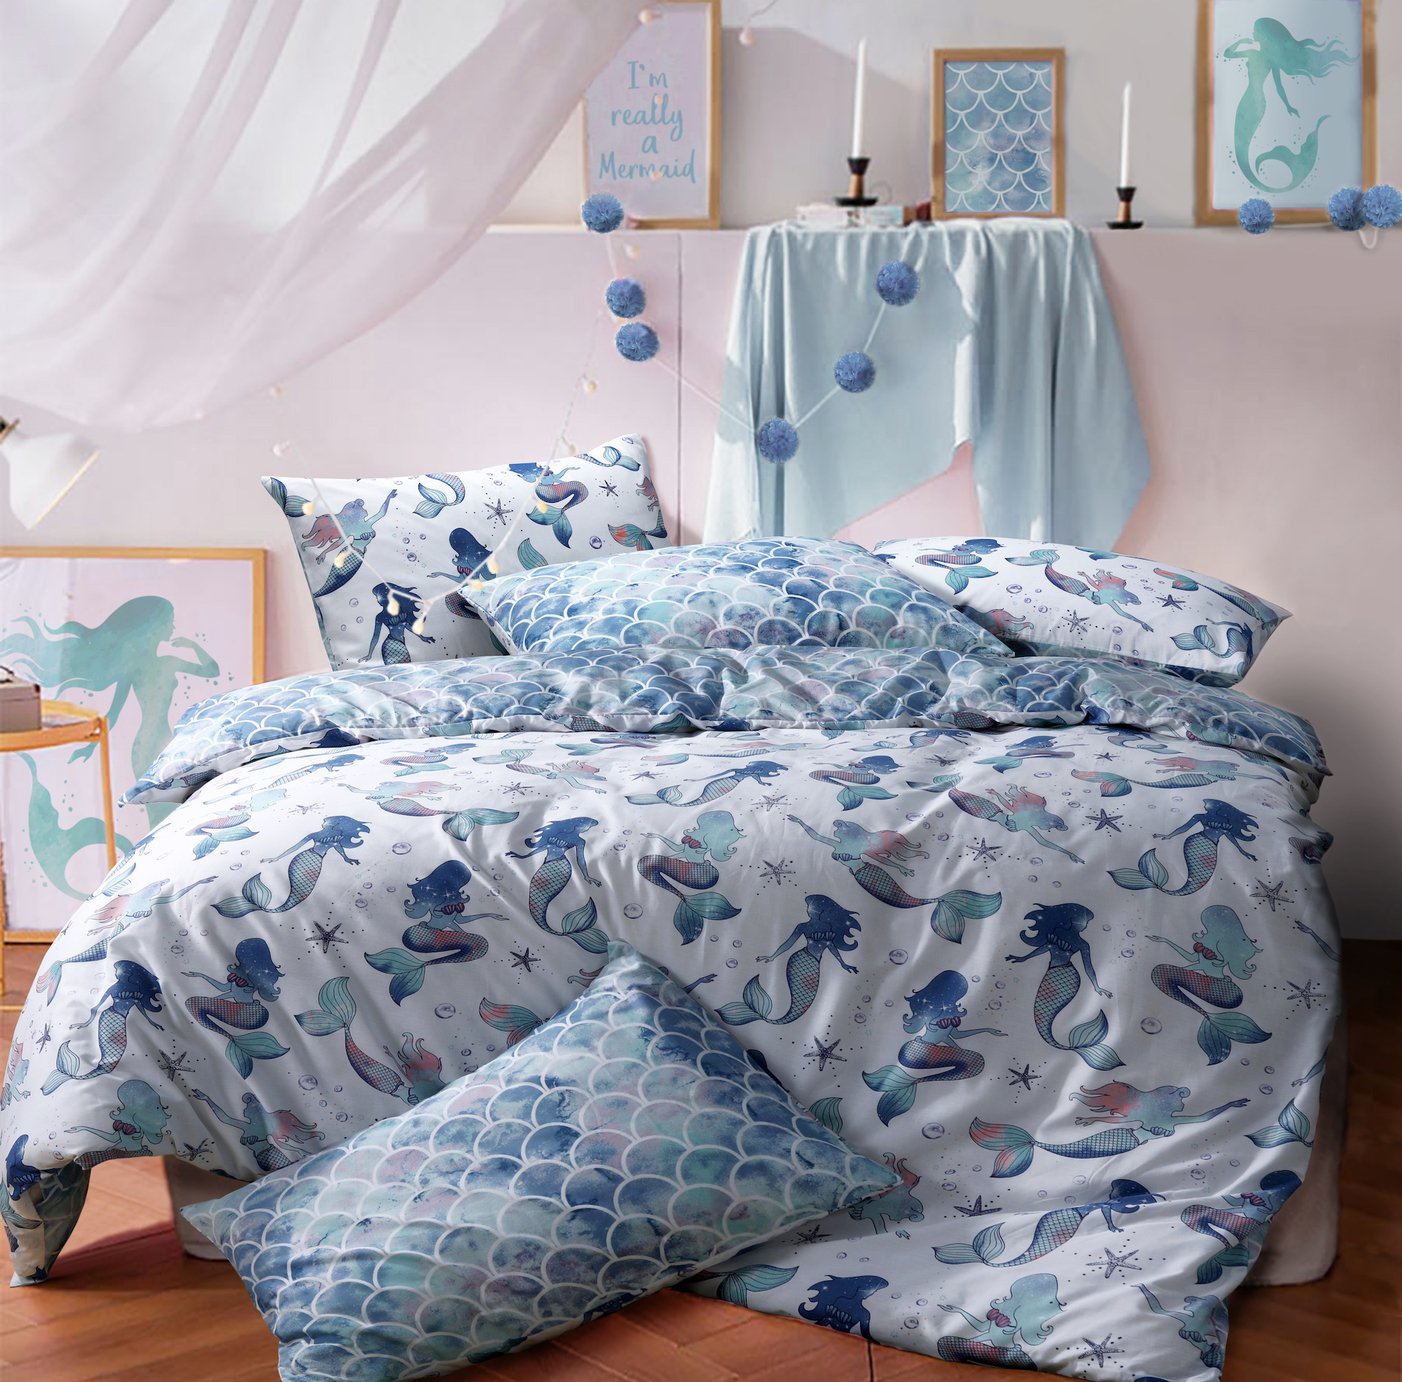 Argos Home Mermaid Bedding Set - Kingsize